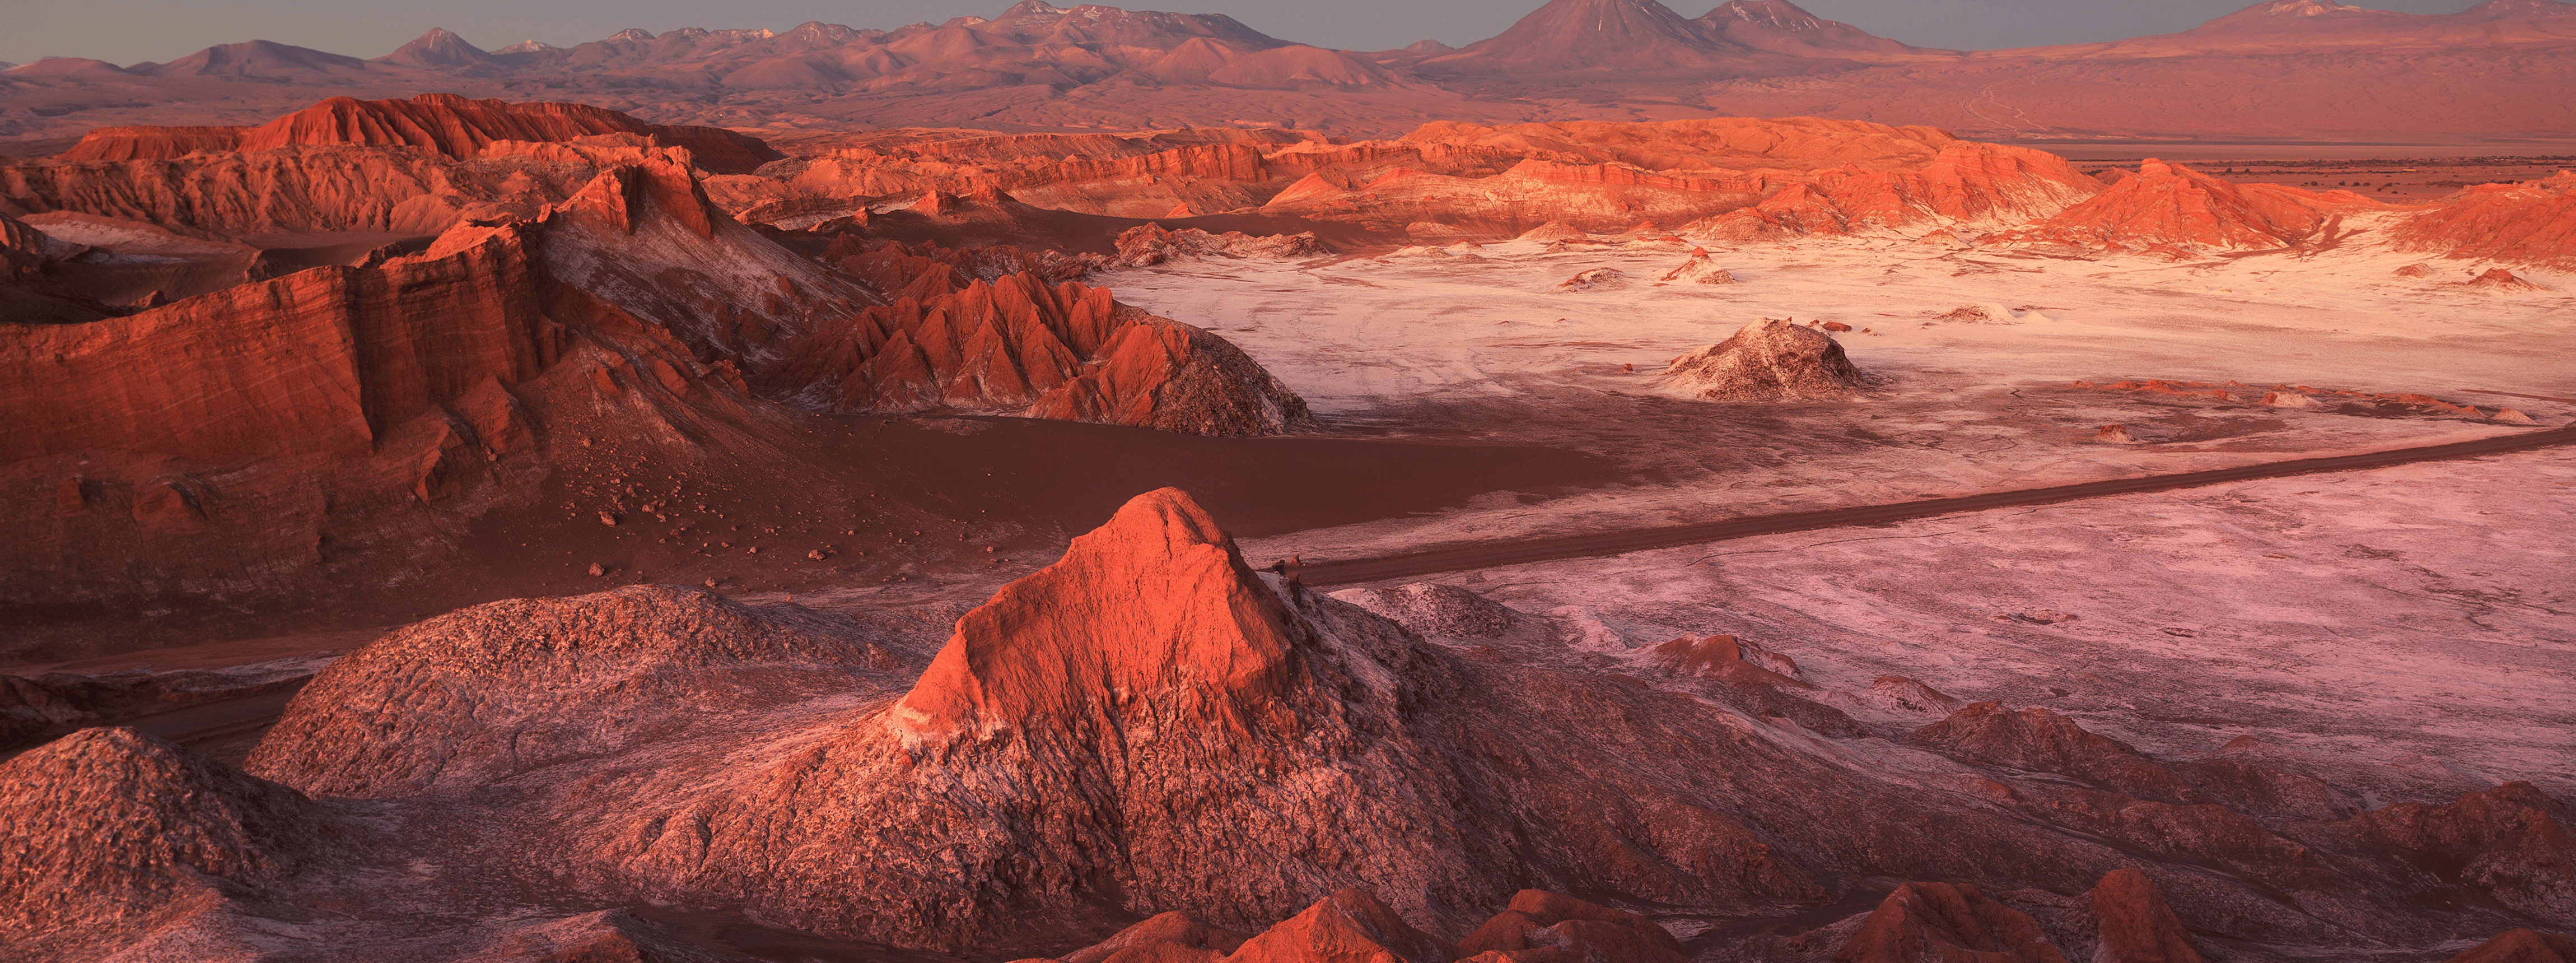 /resource/Images/southamerica/chile/headerimage/Moon-Valley,-Atacama-Desert-Chile.png